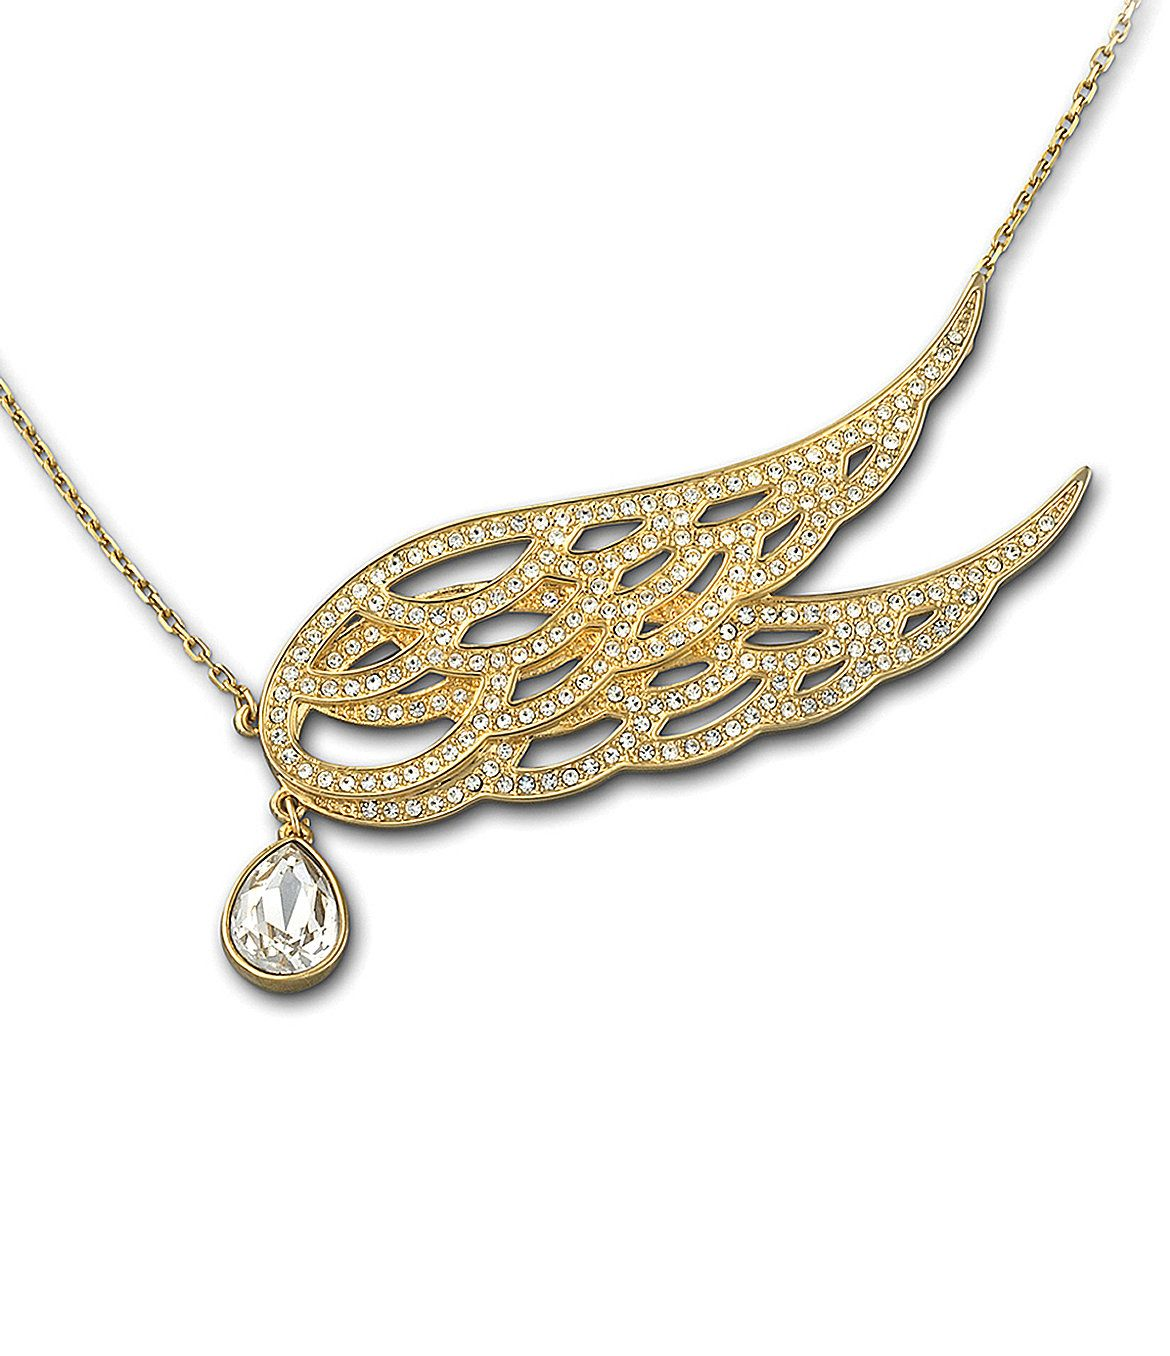 "An openwork goldtone set of wings embellished with pave crystals gives this Swarovski necklace a dramatic, elegant look. The clear crystal accent drop is a sparkling touch.  goldtone plated base metal  lobster clasp closure  15 5/8"" long"